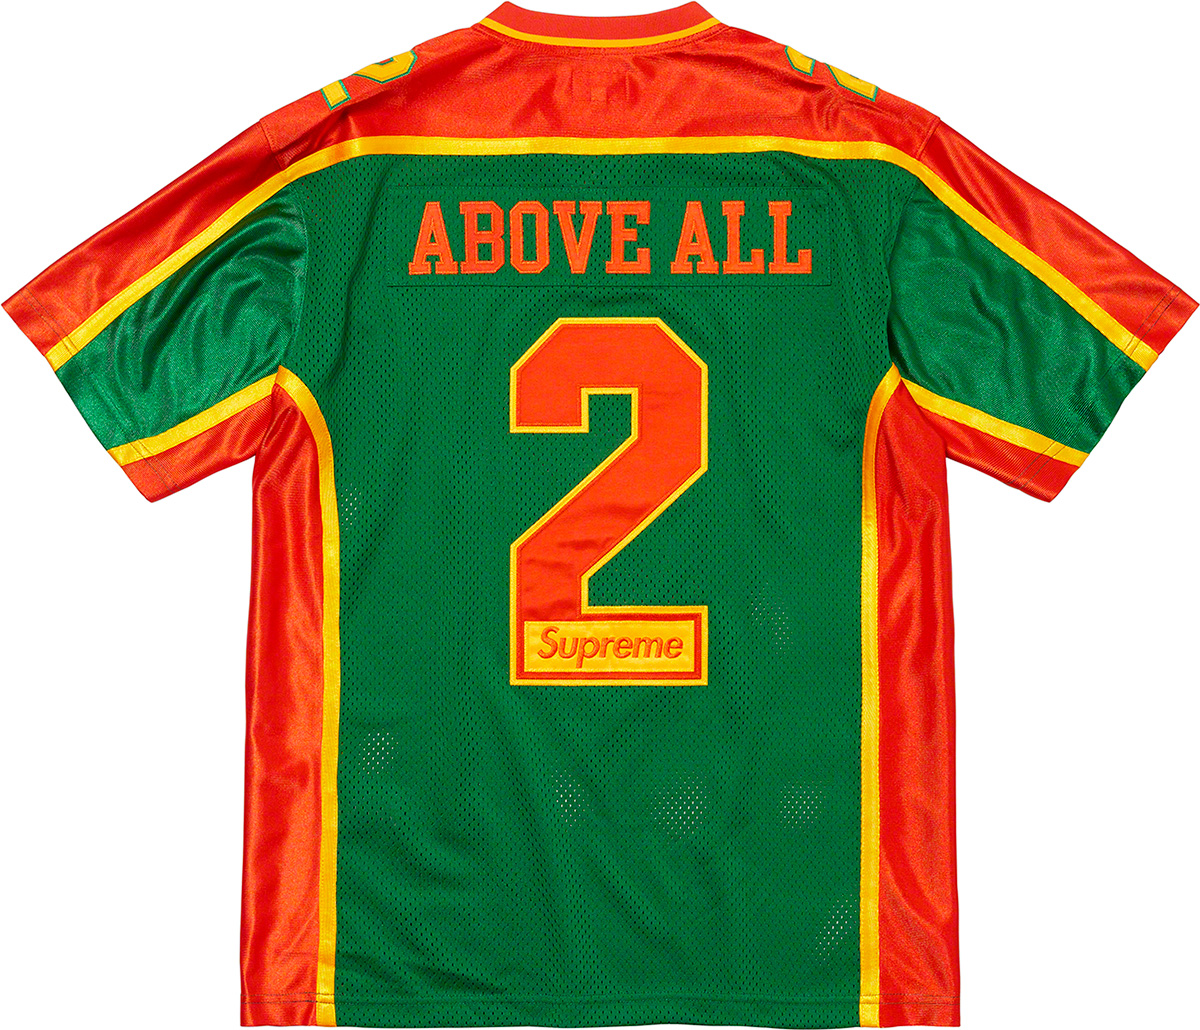 supreme-21aw-21fw-above-all-football-jersey